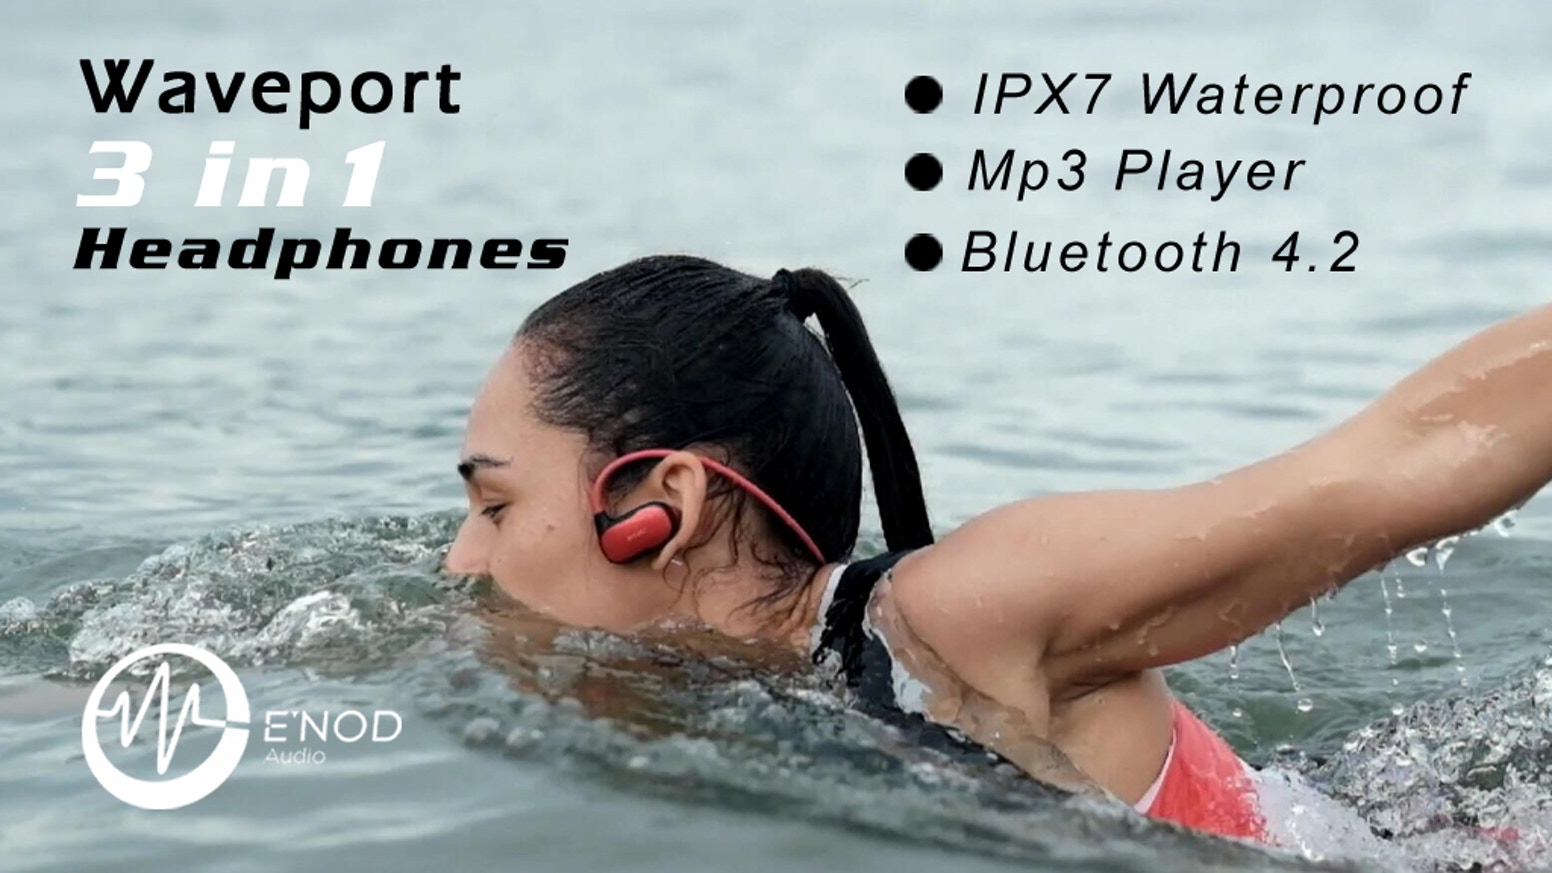 MP3+IPX7 Waterproof+Bluetooth Sport Headphones. Swim far as you can without losing HD audio. Perfect Fitting&Battery Life.